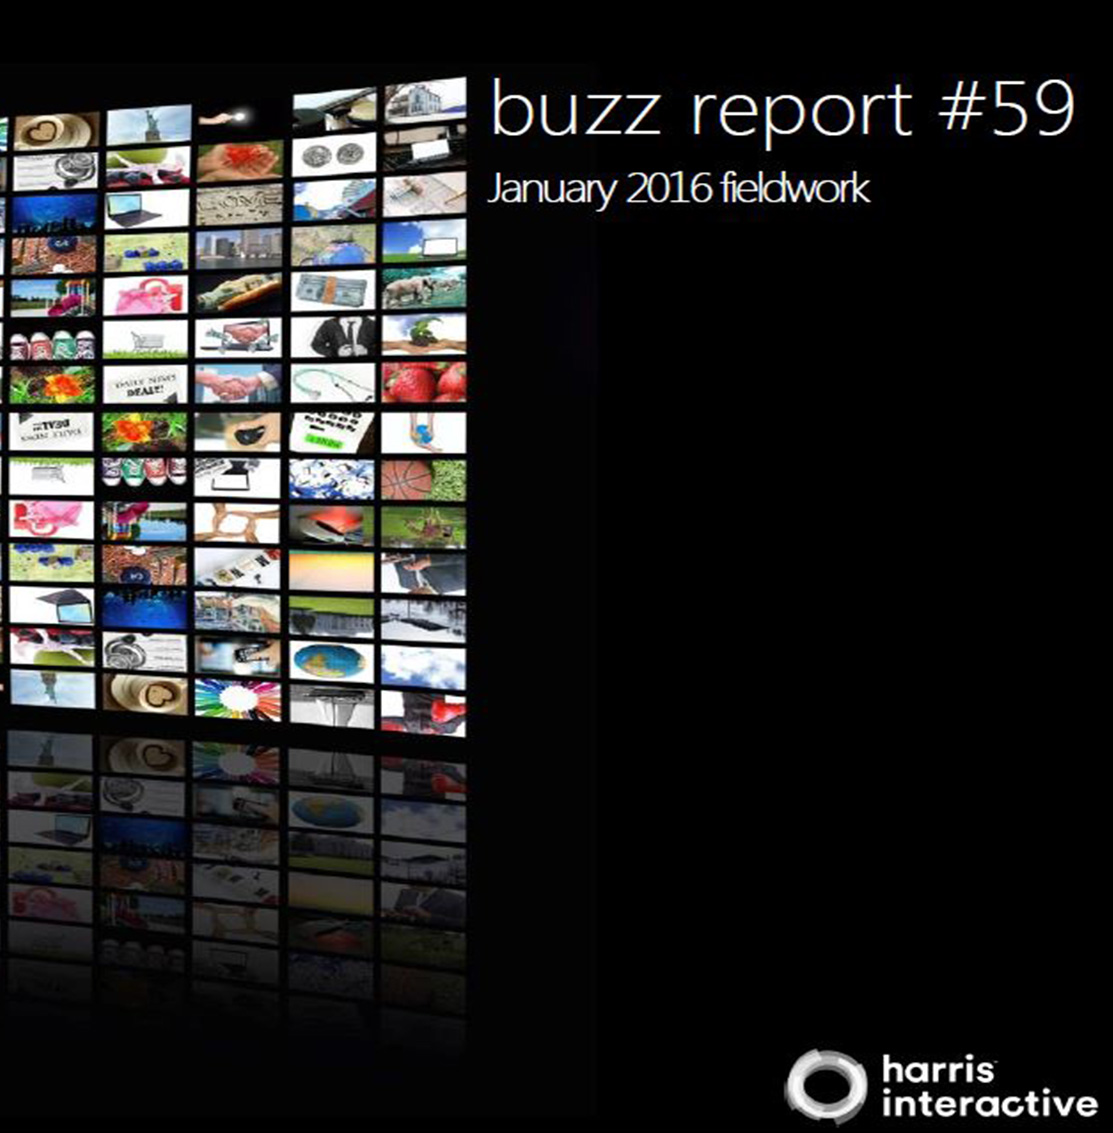 Buzz Report - January 2016 image